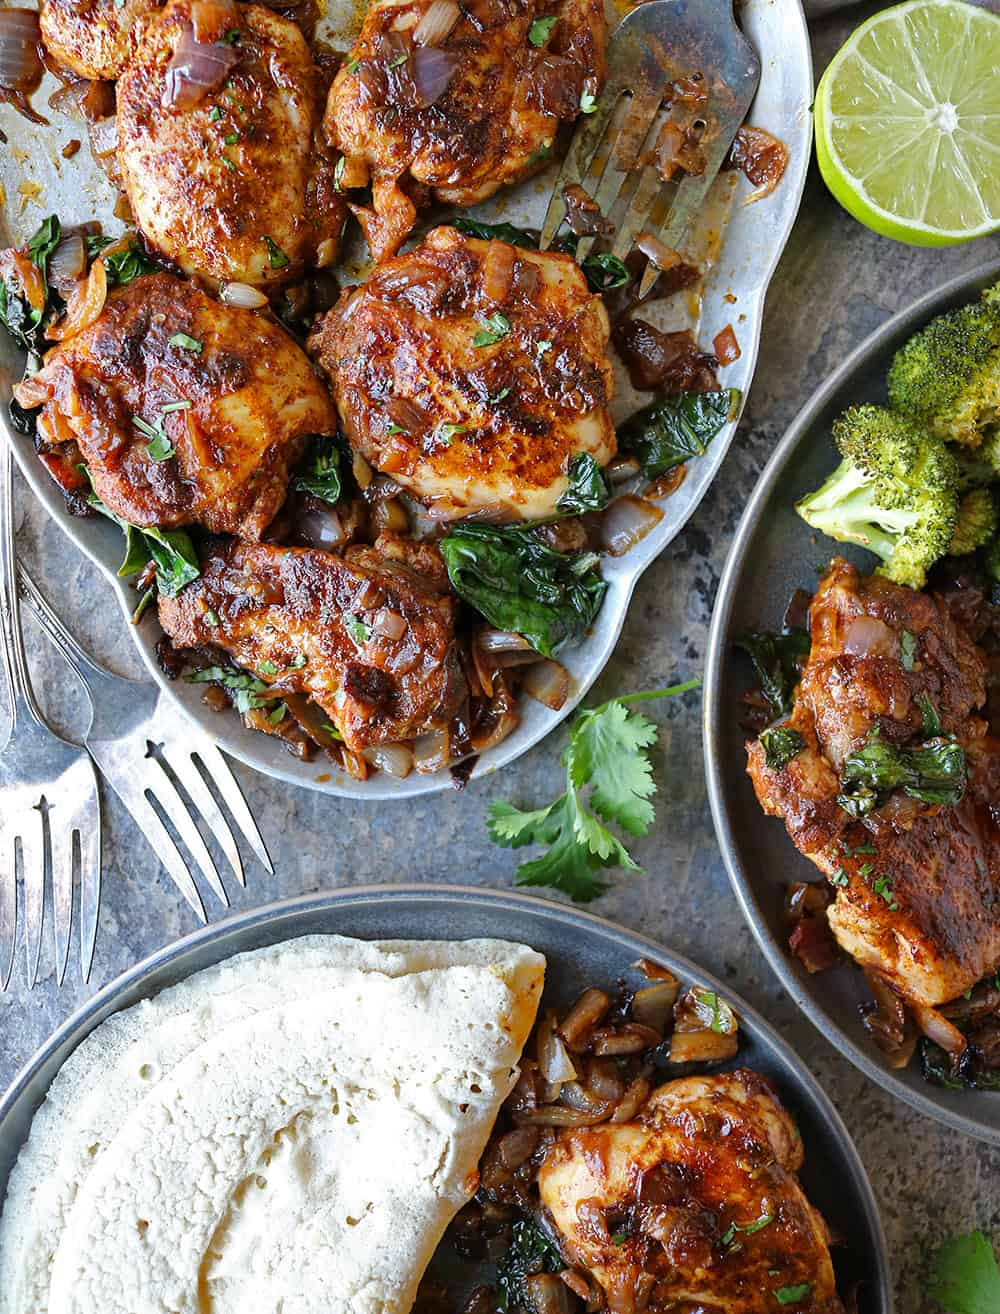 How To Make Easy Za'atar Ras el hanout Chicken Spinach Dinner today.